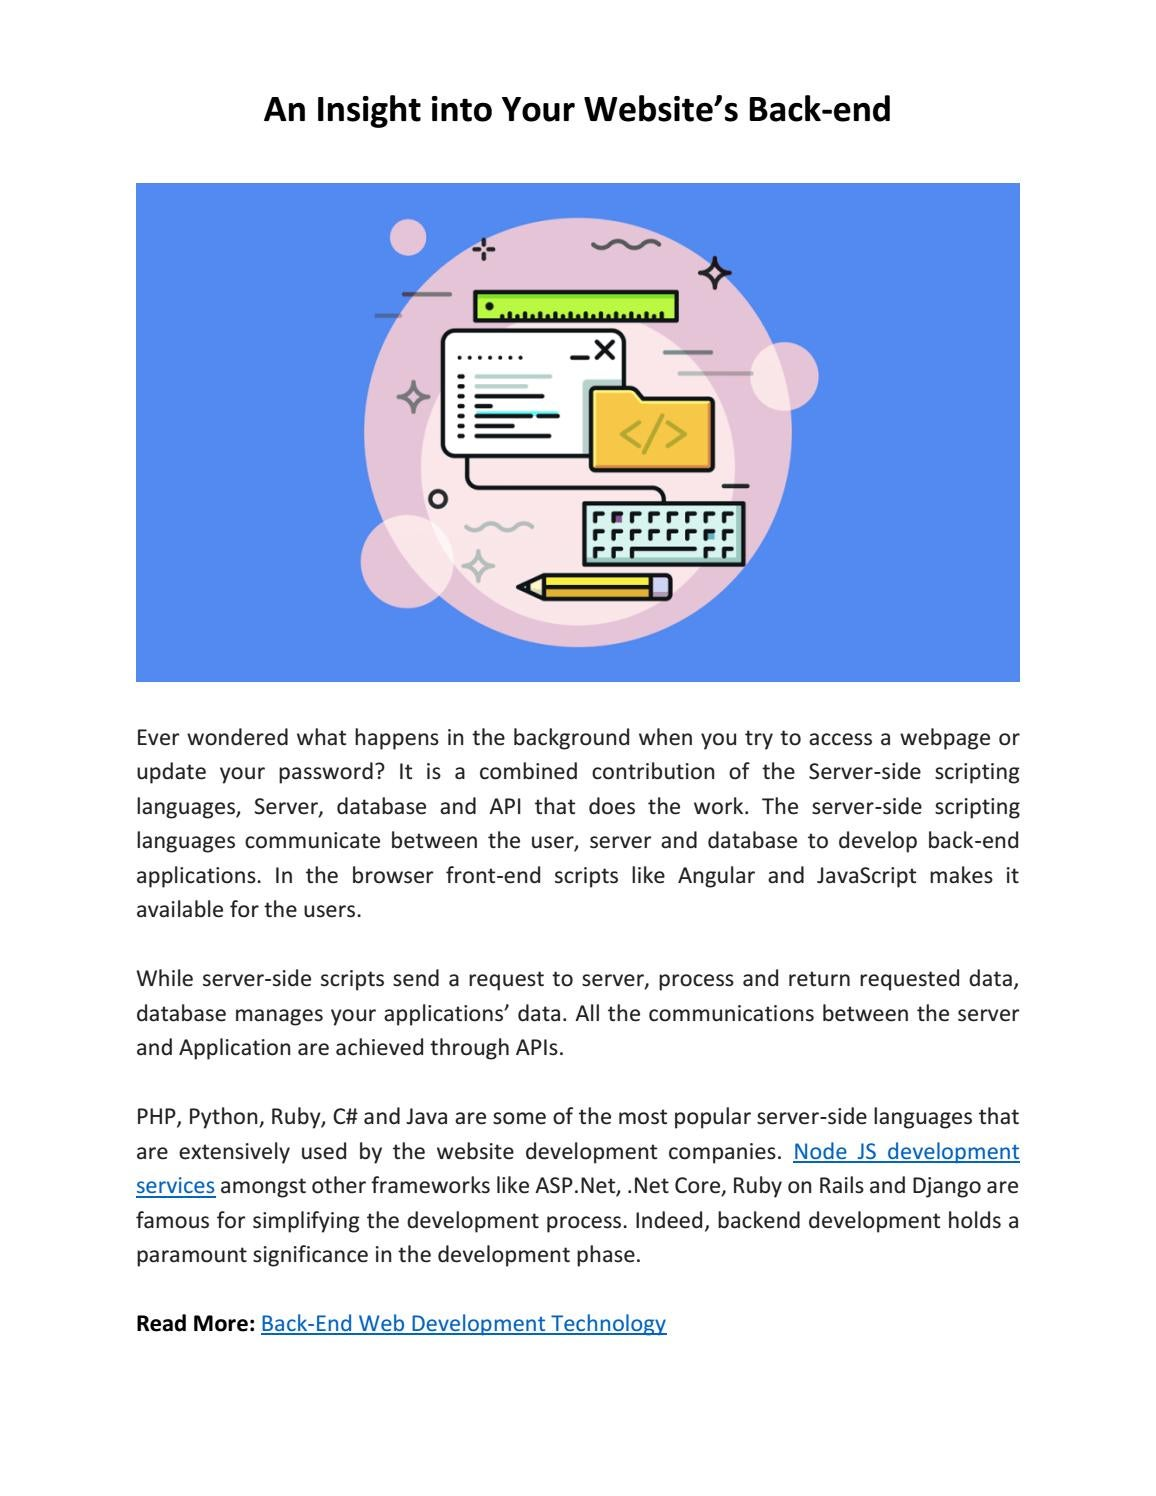 An Insight into Your Website's Back-end by TechAvidus - issuu